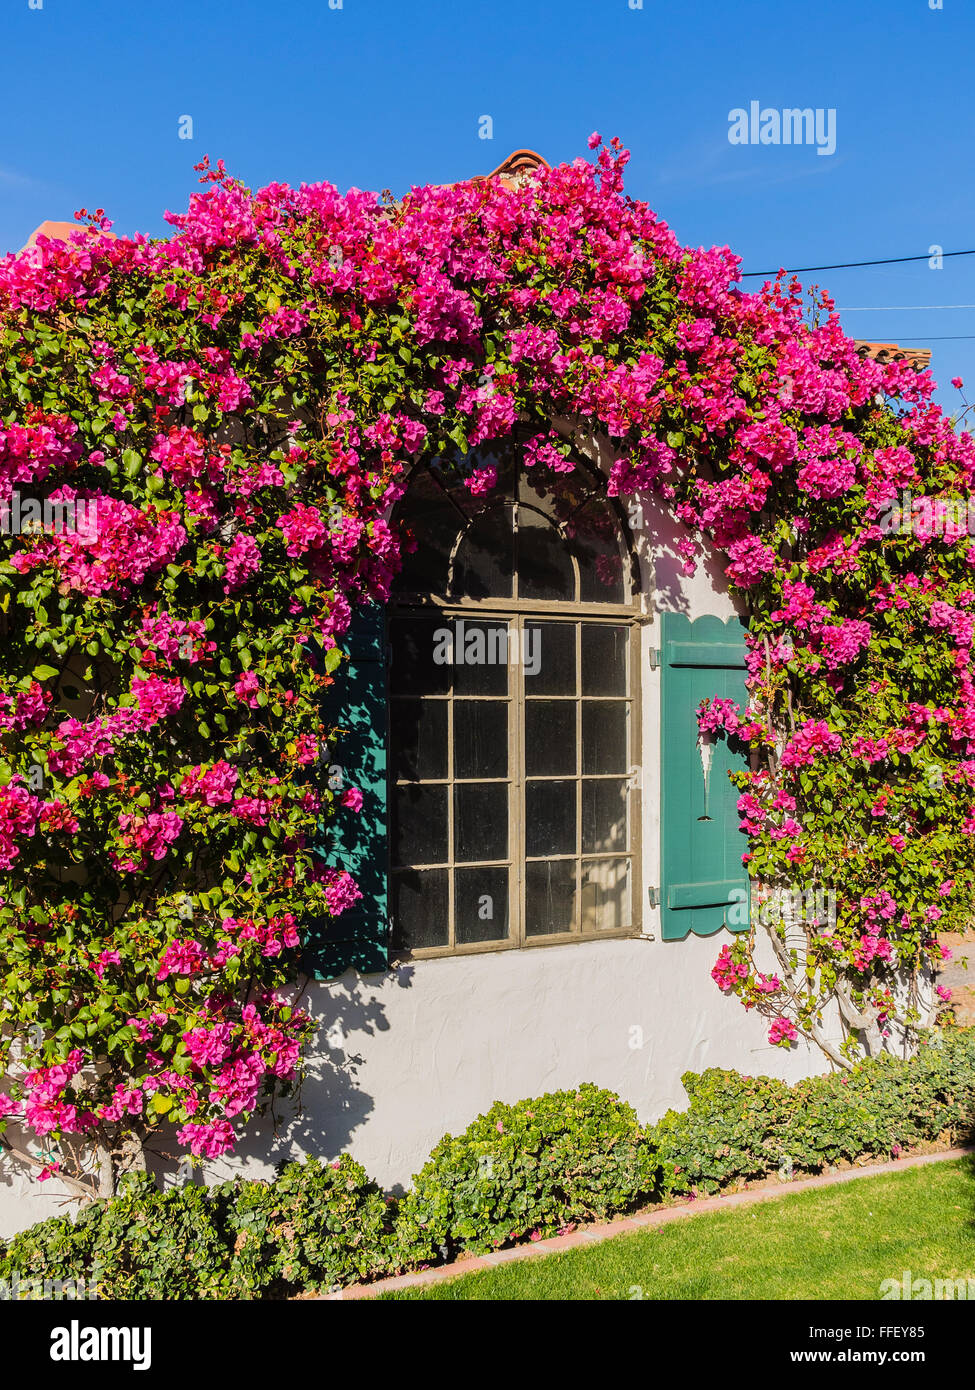 Bougainvillea flowers form an arch over a window of an old adobe bougainvillea flowers form an arch over a window of an old adobe style stucco house in the older part of palm springs ca mightylinksfo